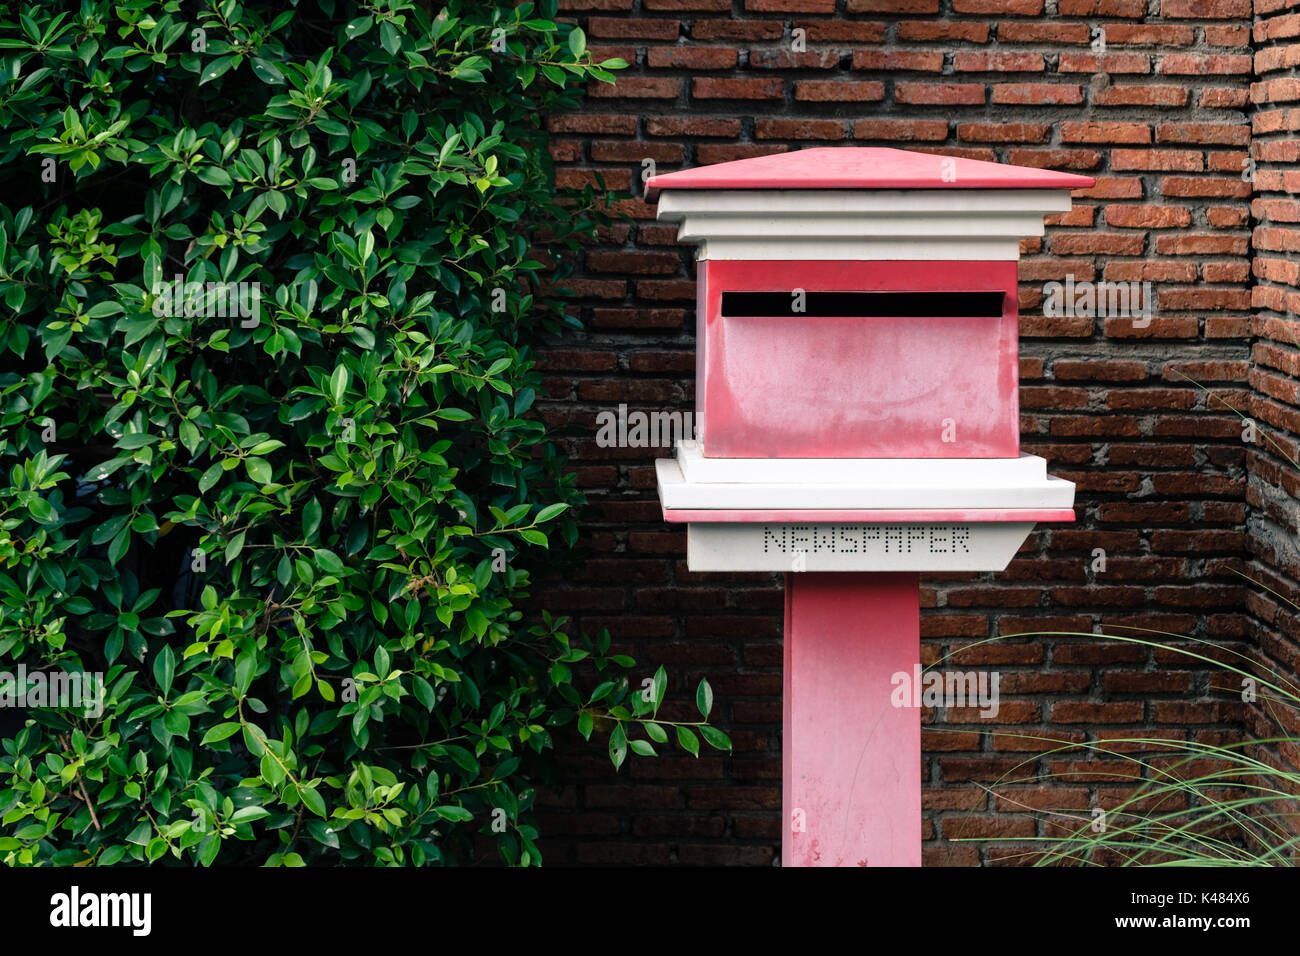 Outbox outside the house with bushes and orange brick walls. - Stock Image